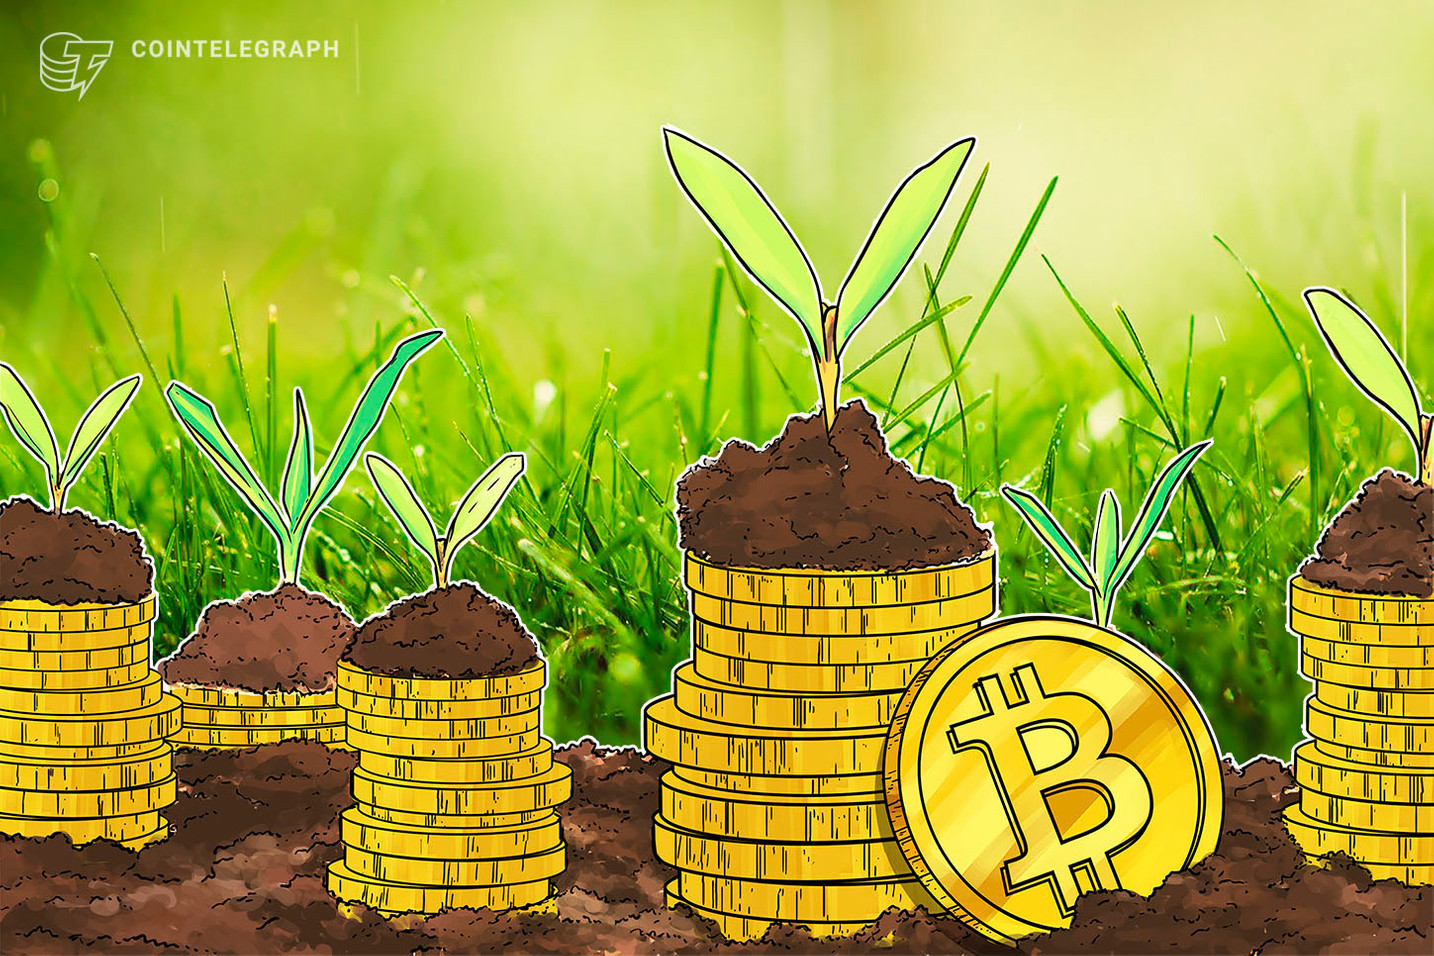 German Private Equity Fund Targets Bitcoin Mining аs Clients Demand 'Regulated Product'